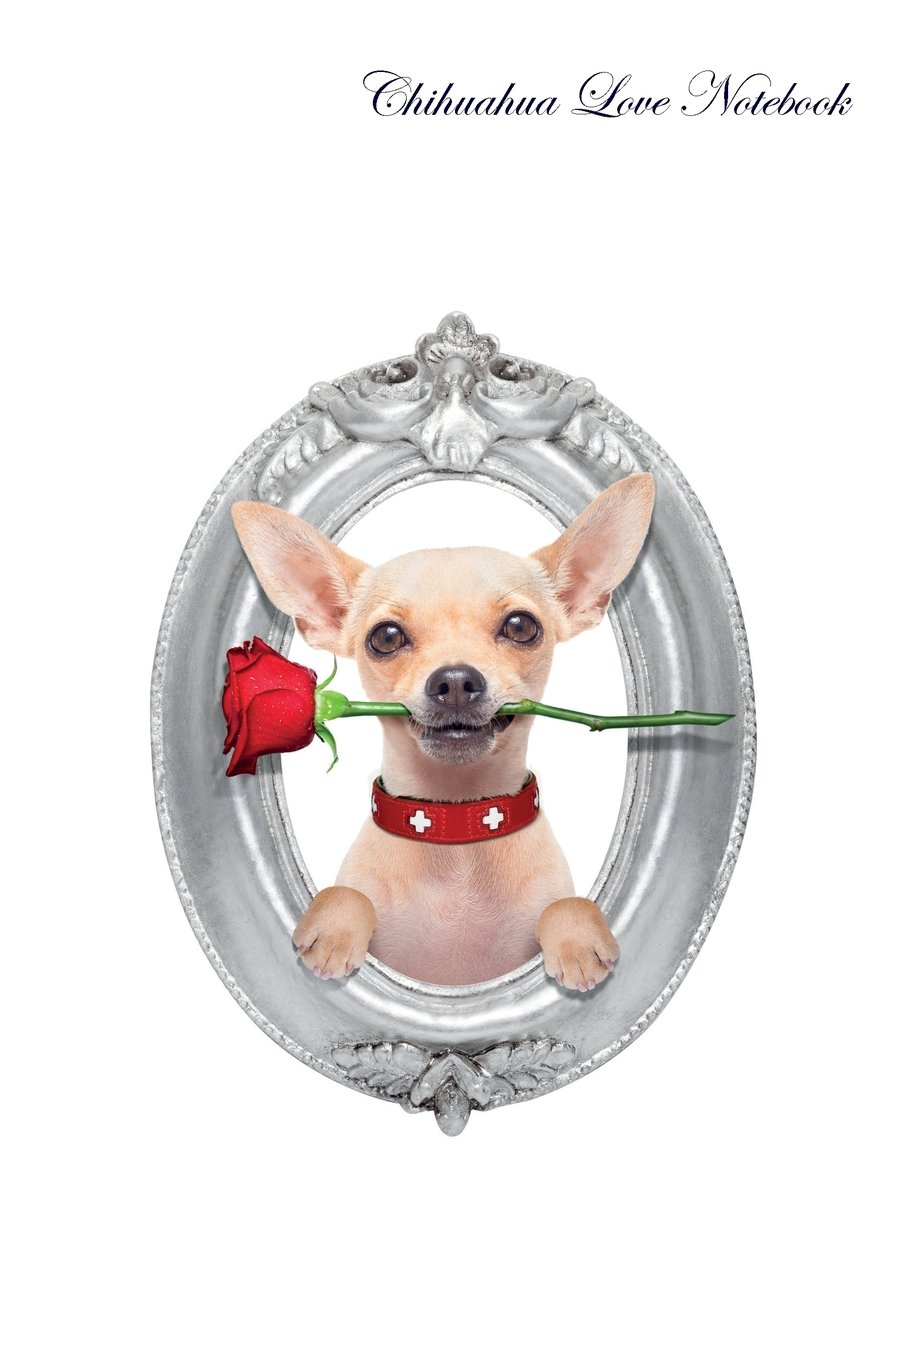 Read Online Chihuahua Love Notebook Record Journal, Diary, Special Memories, To Do List, Academic Notepad, and Much More PDF